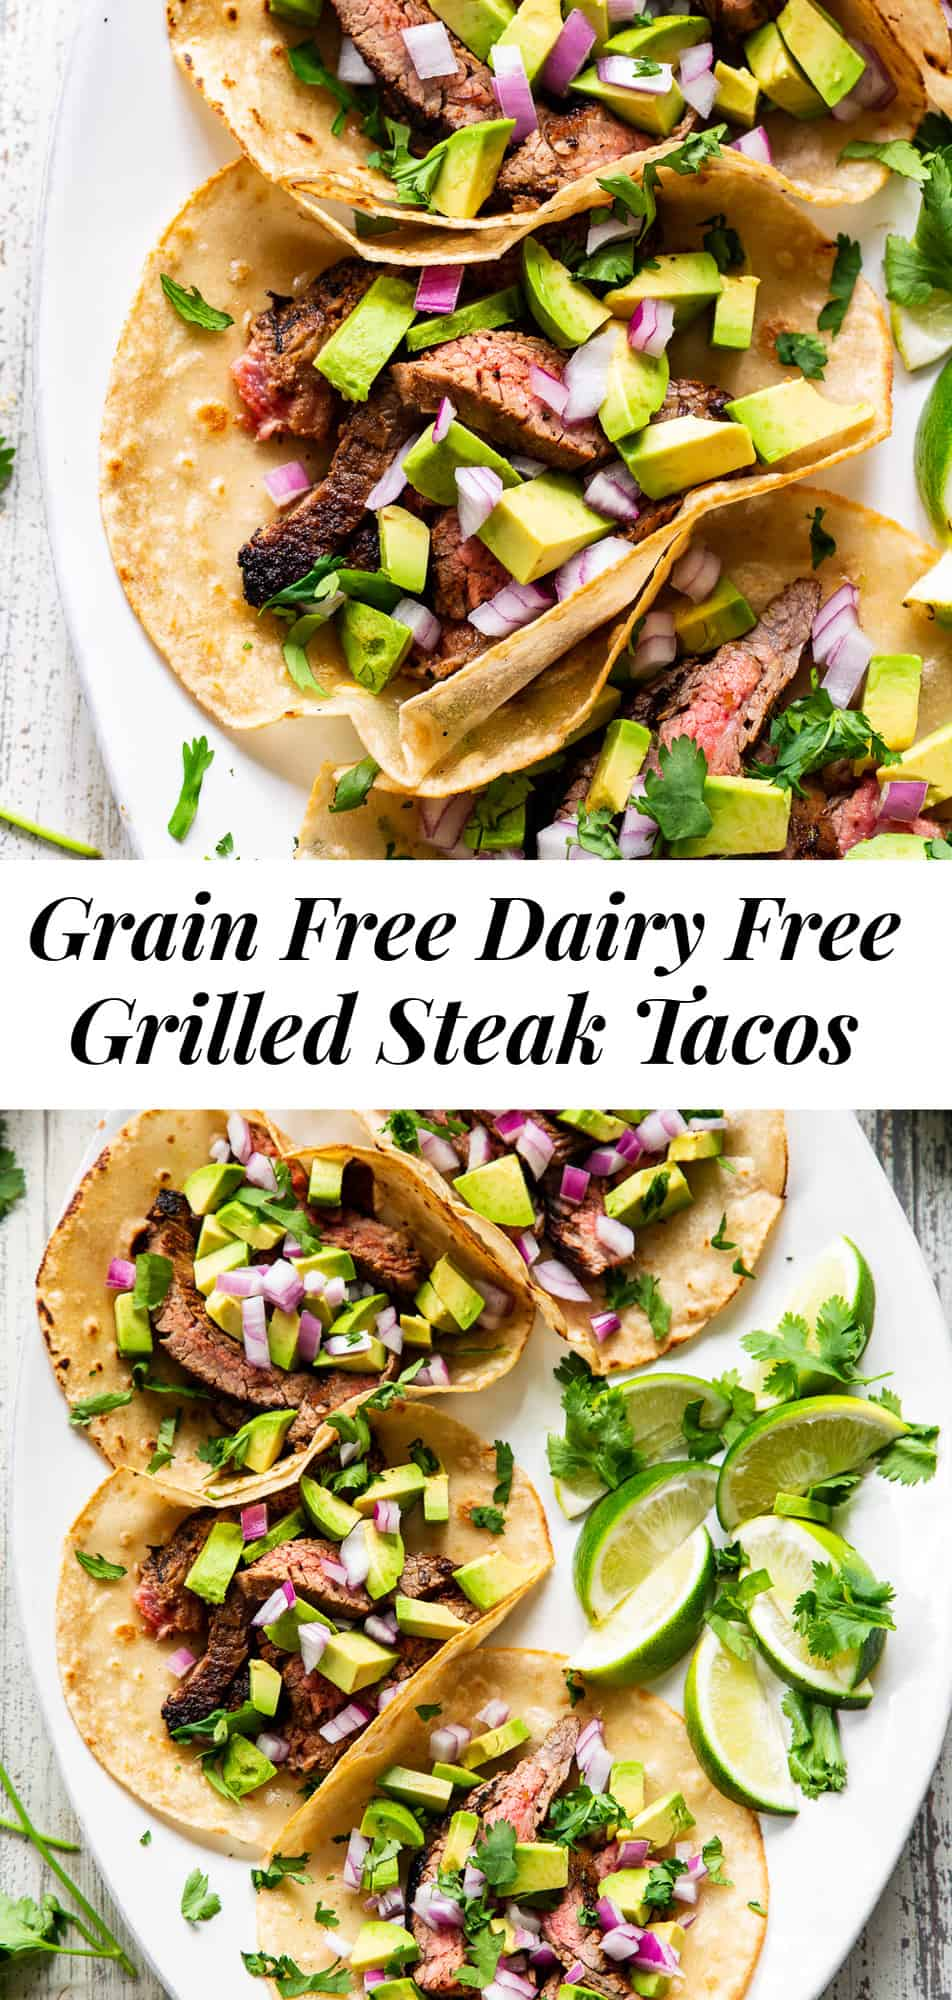 These easy grilled steak tacos are perfect for taco Tuesdays or any night! The steak has the most flavorful chili lime marinade and the tacos are made with grain free tortillas to keep them Paleo and your favorite taco toppings complete the meal! #paleo #cleaneating #grainfree #tacos